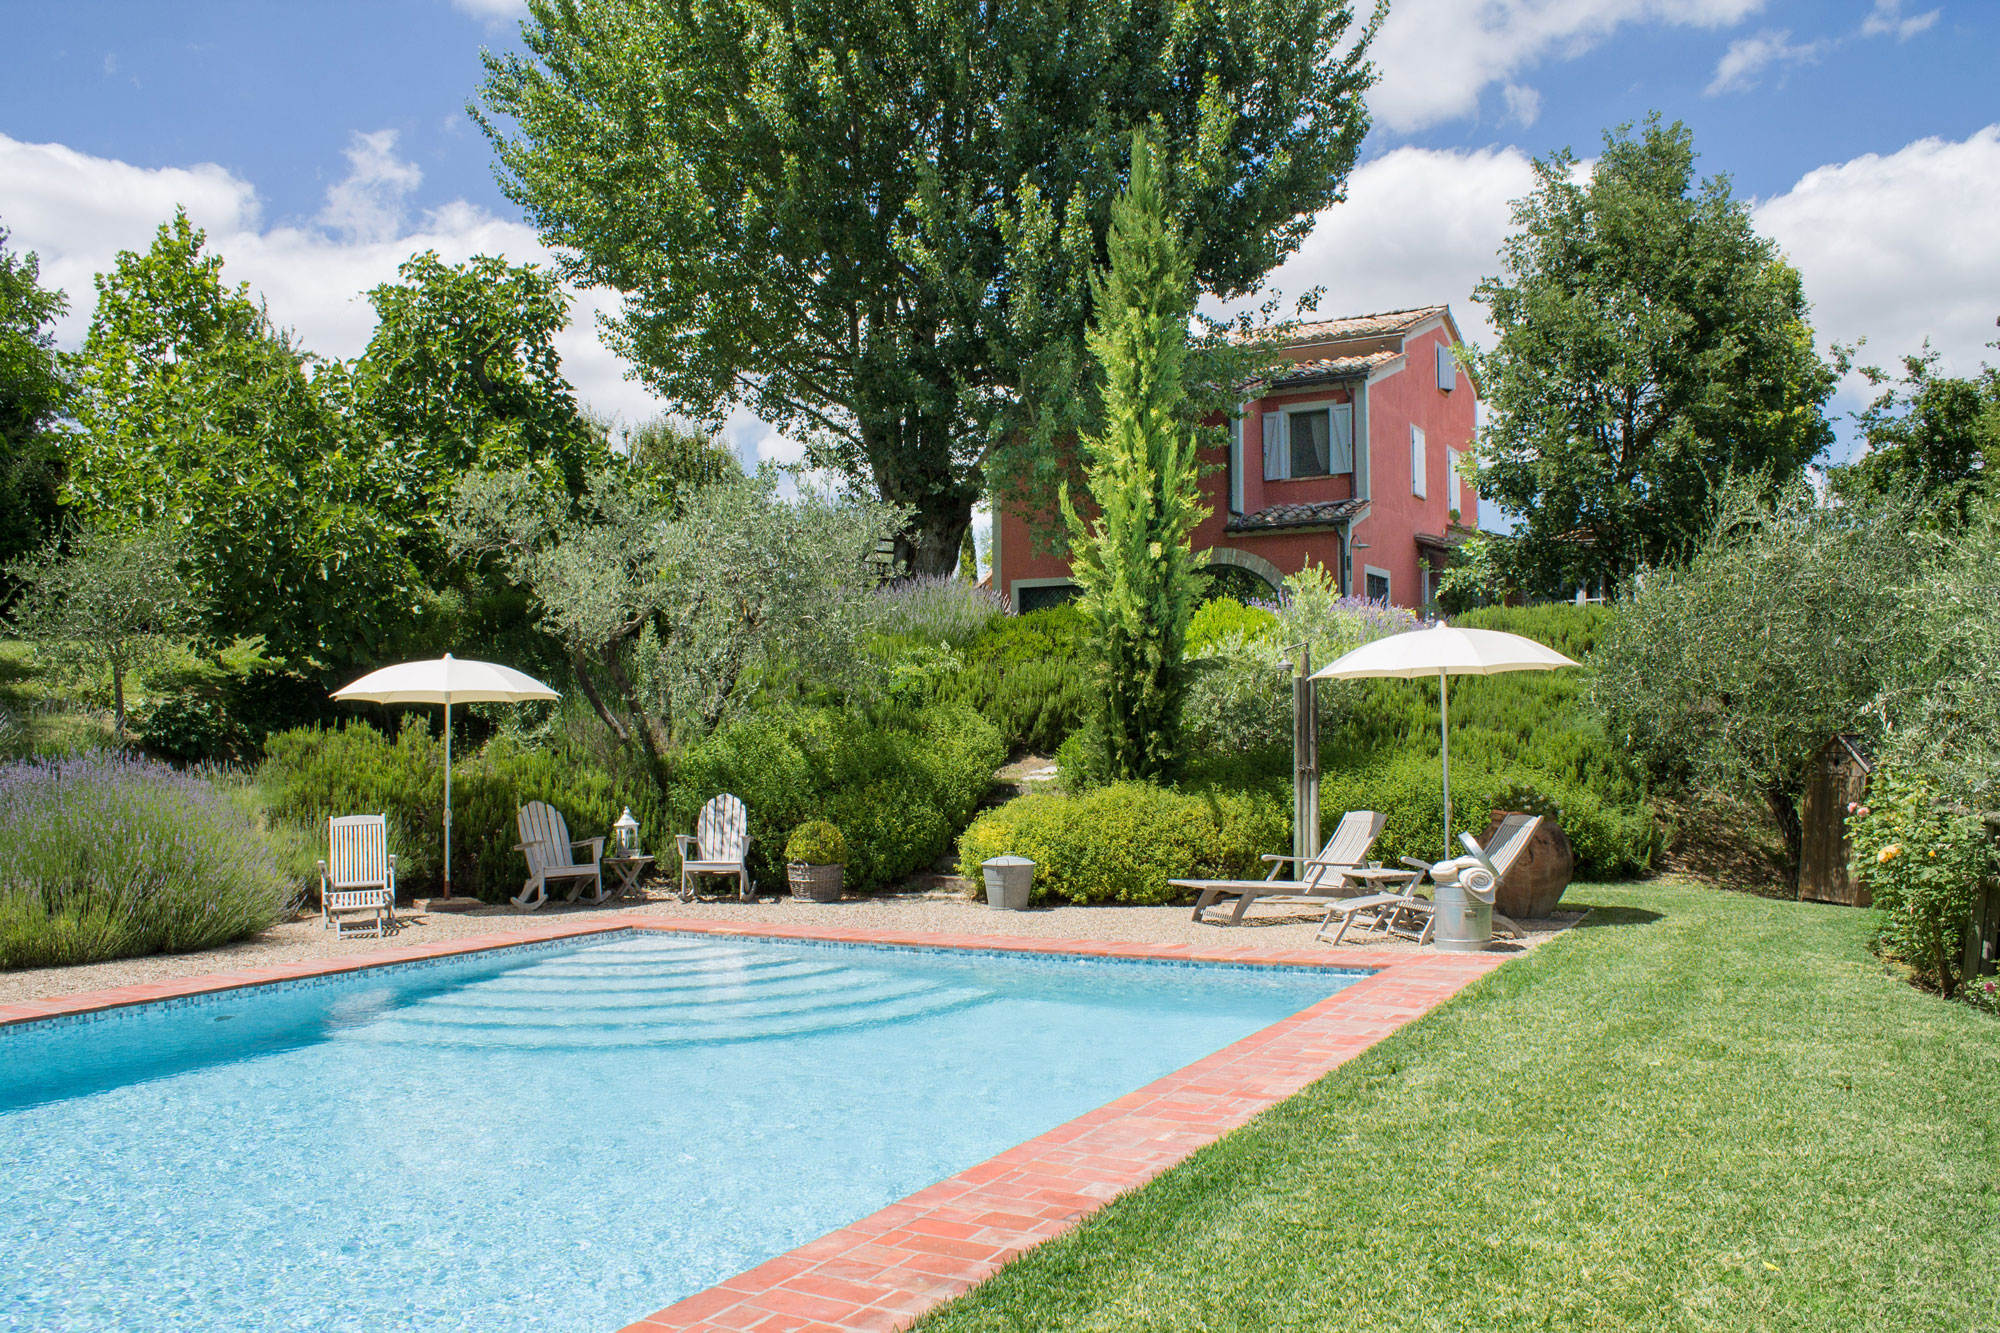 Restored farmhouse with swimming pool for sale in for Farmhouse with swimming pool